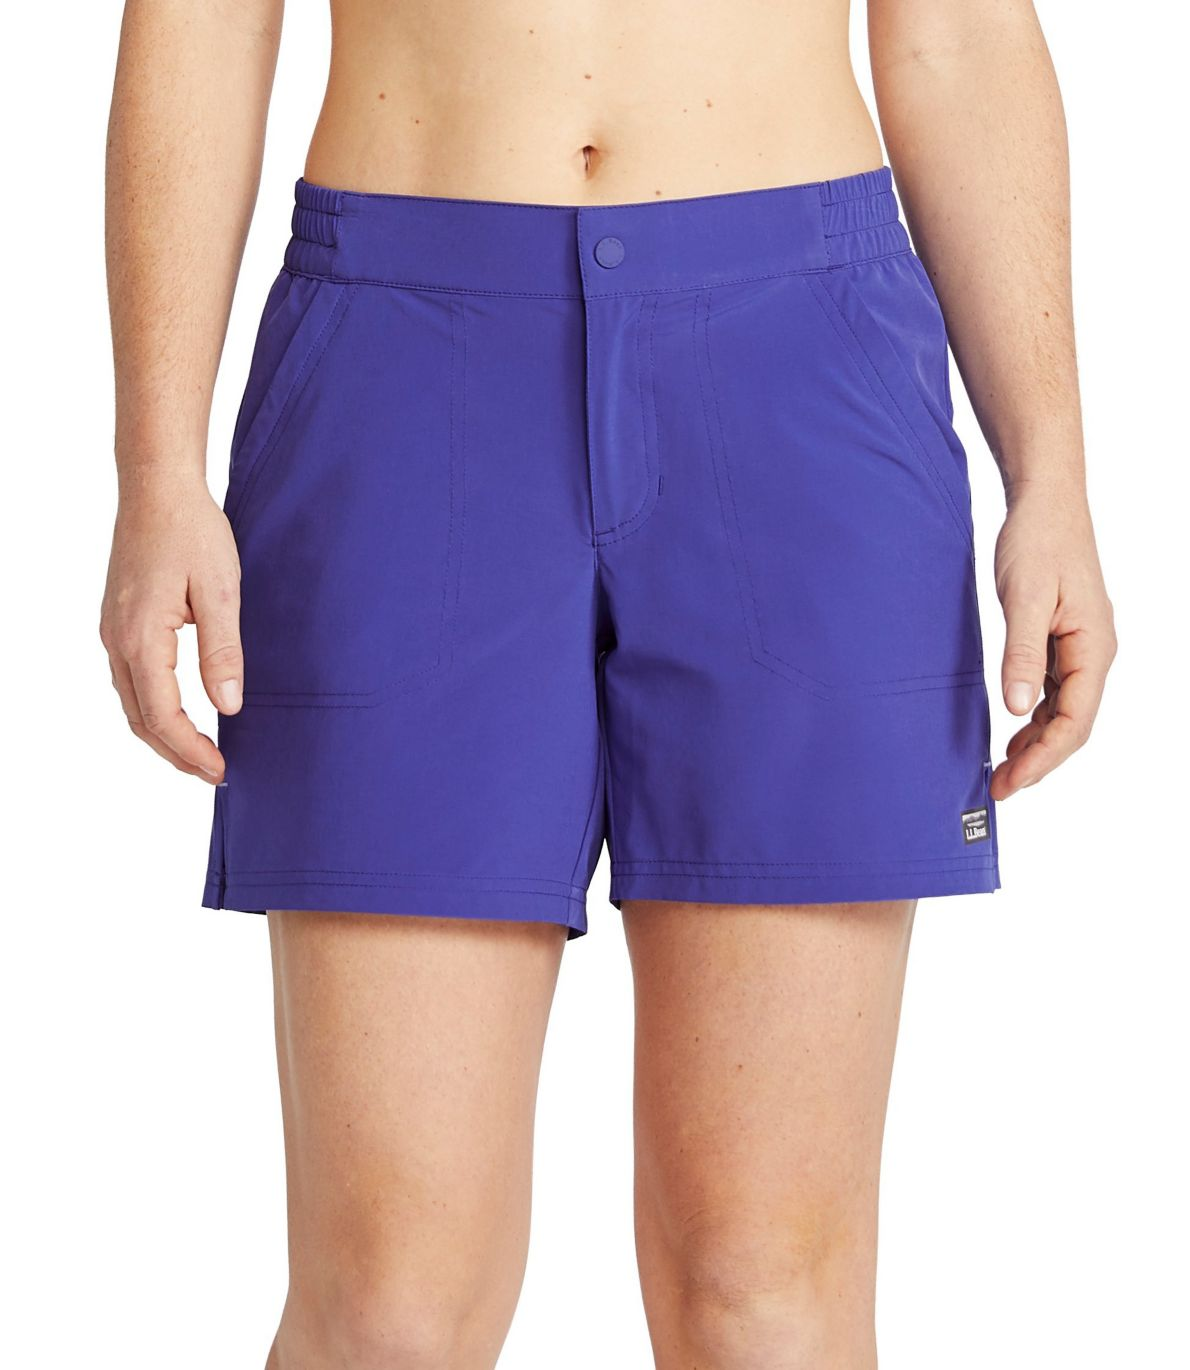 Women's L.L.Bean Stretch UPF Shorts, 6""